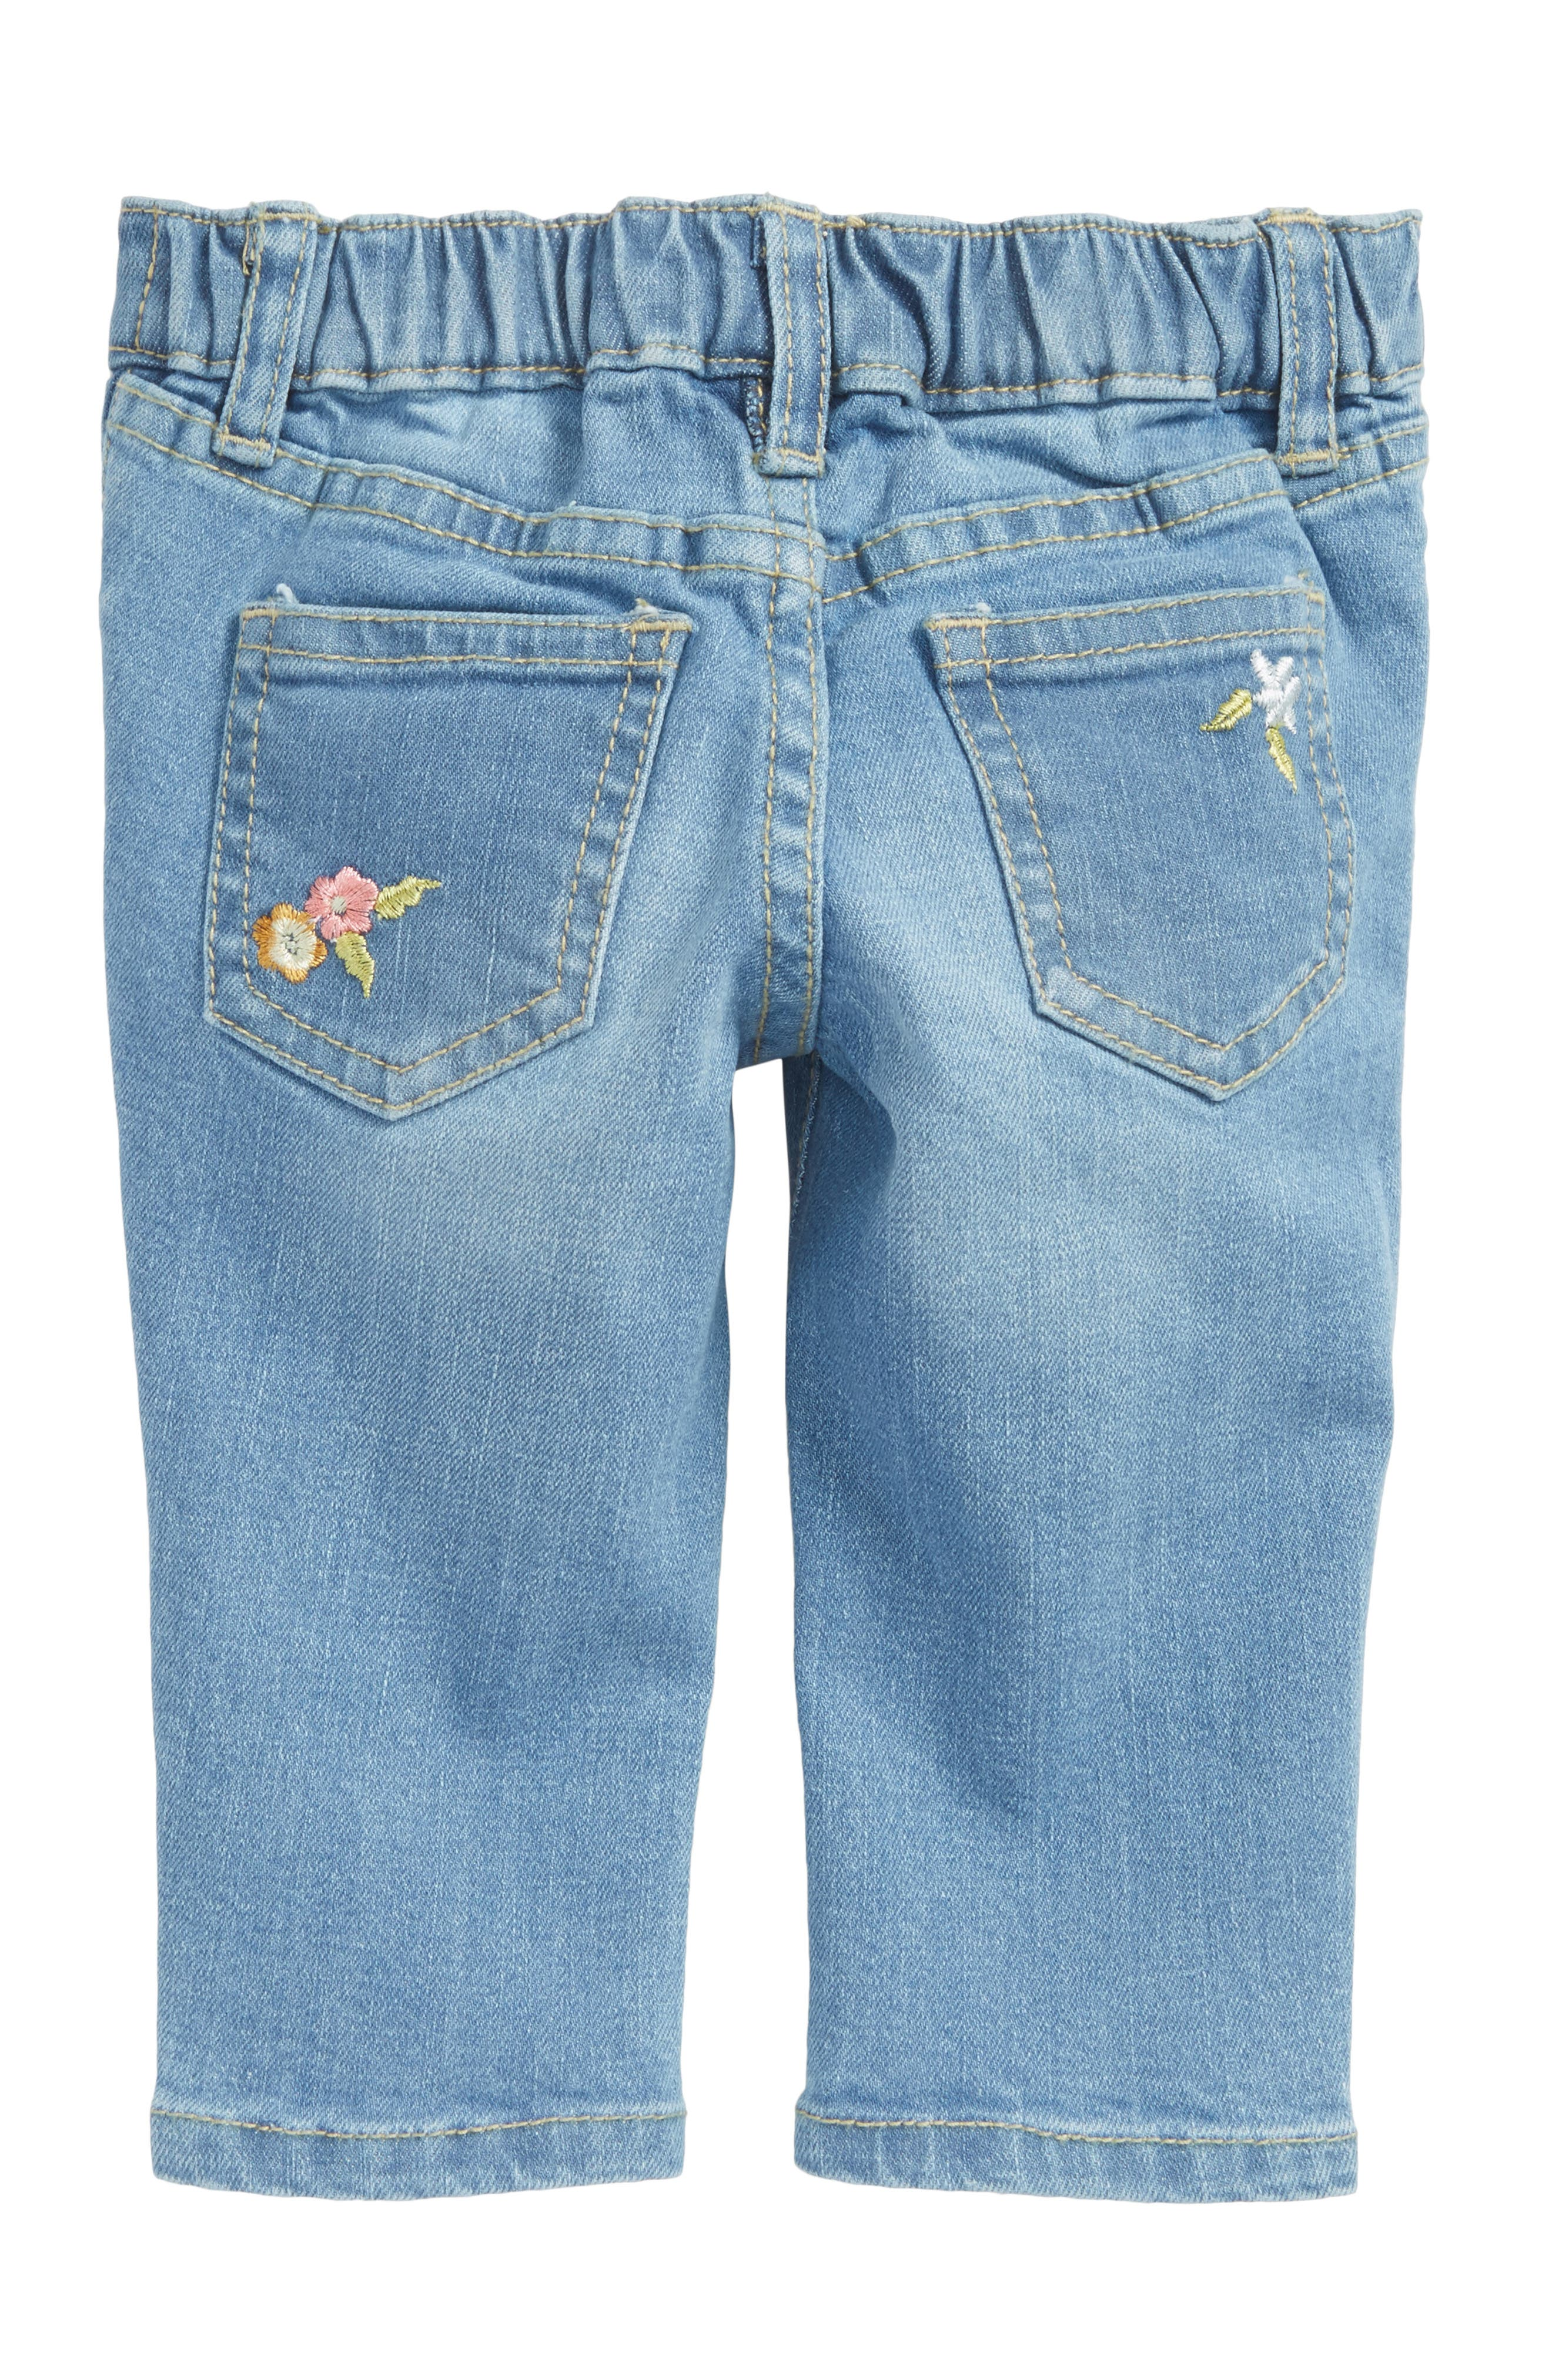 Taylor Embroidered Jeans,                             Alternate thumbnail 2, color,